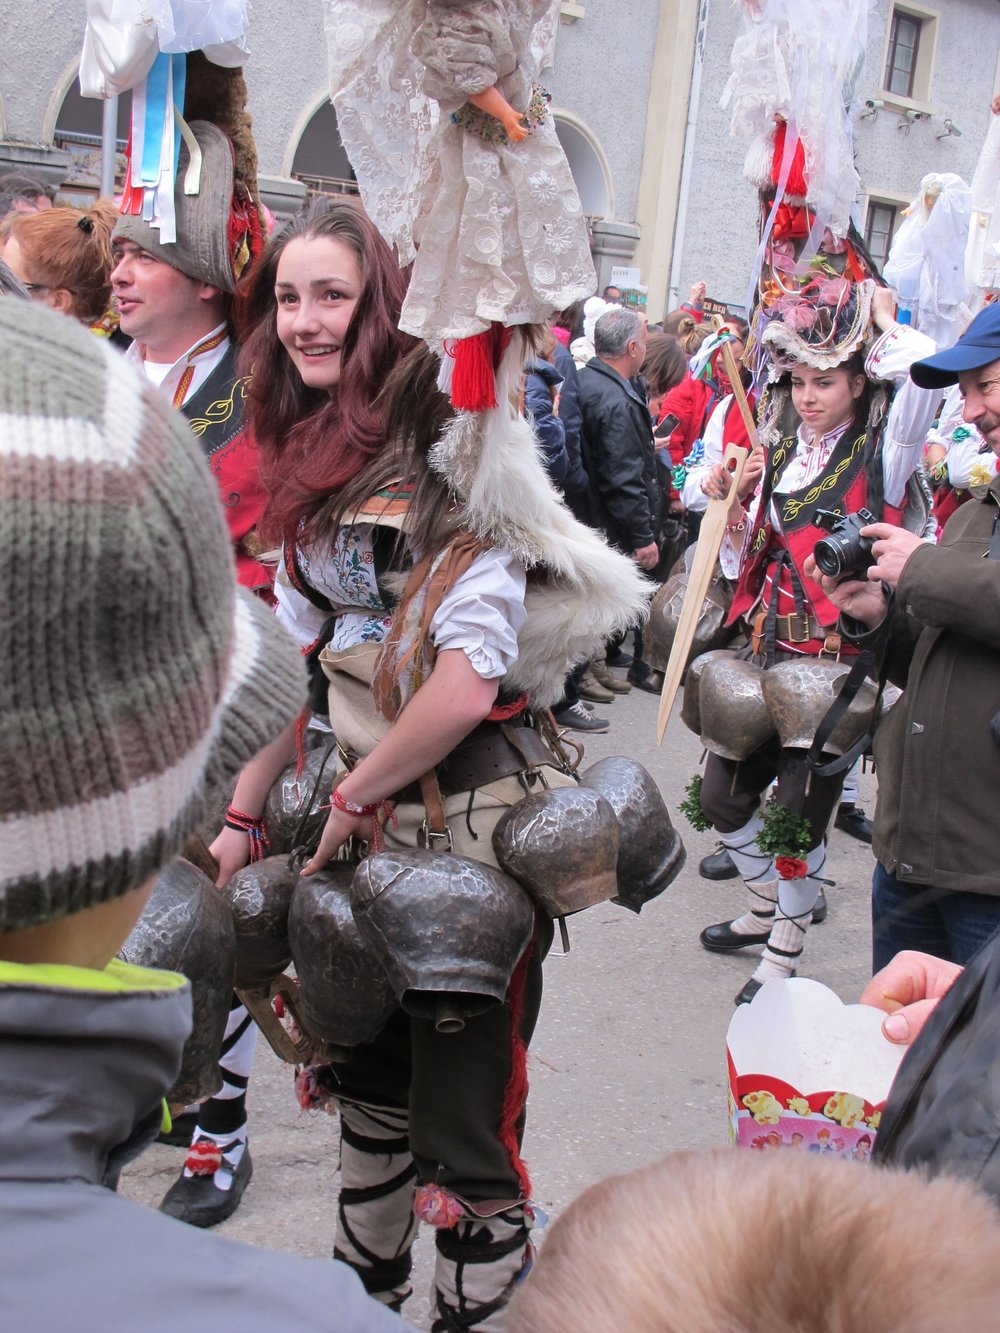 These old bells show the hand hammer marks., Shiroka Laka, Mummers' Festival, Bulgaria  ©   Evelyn Weliver